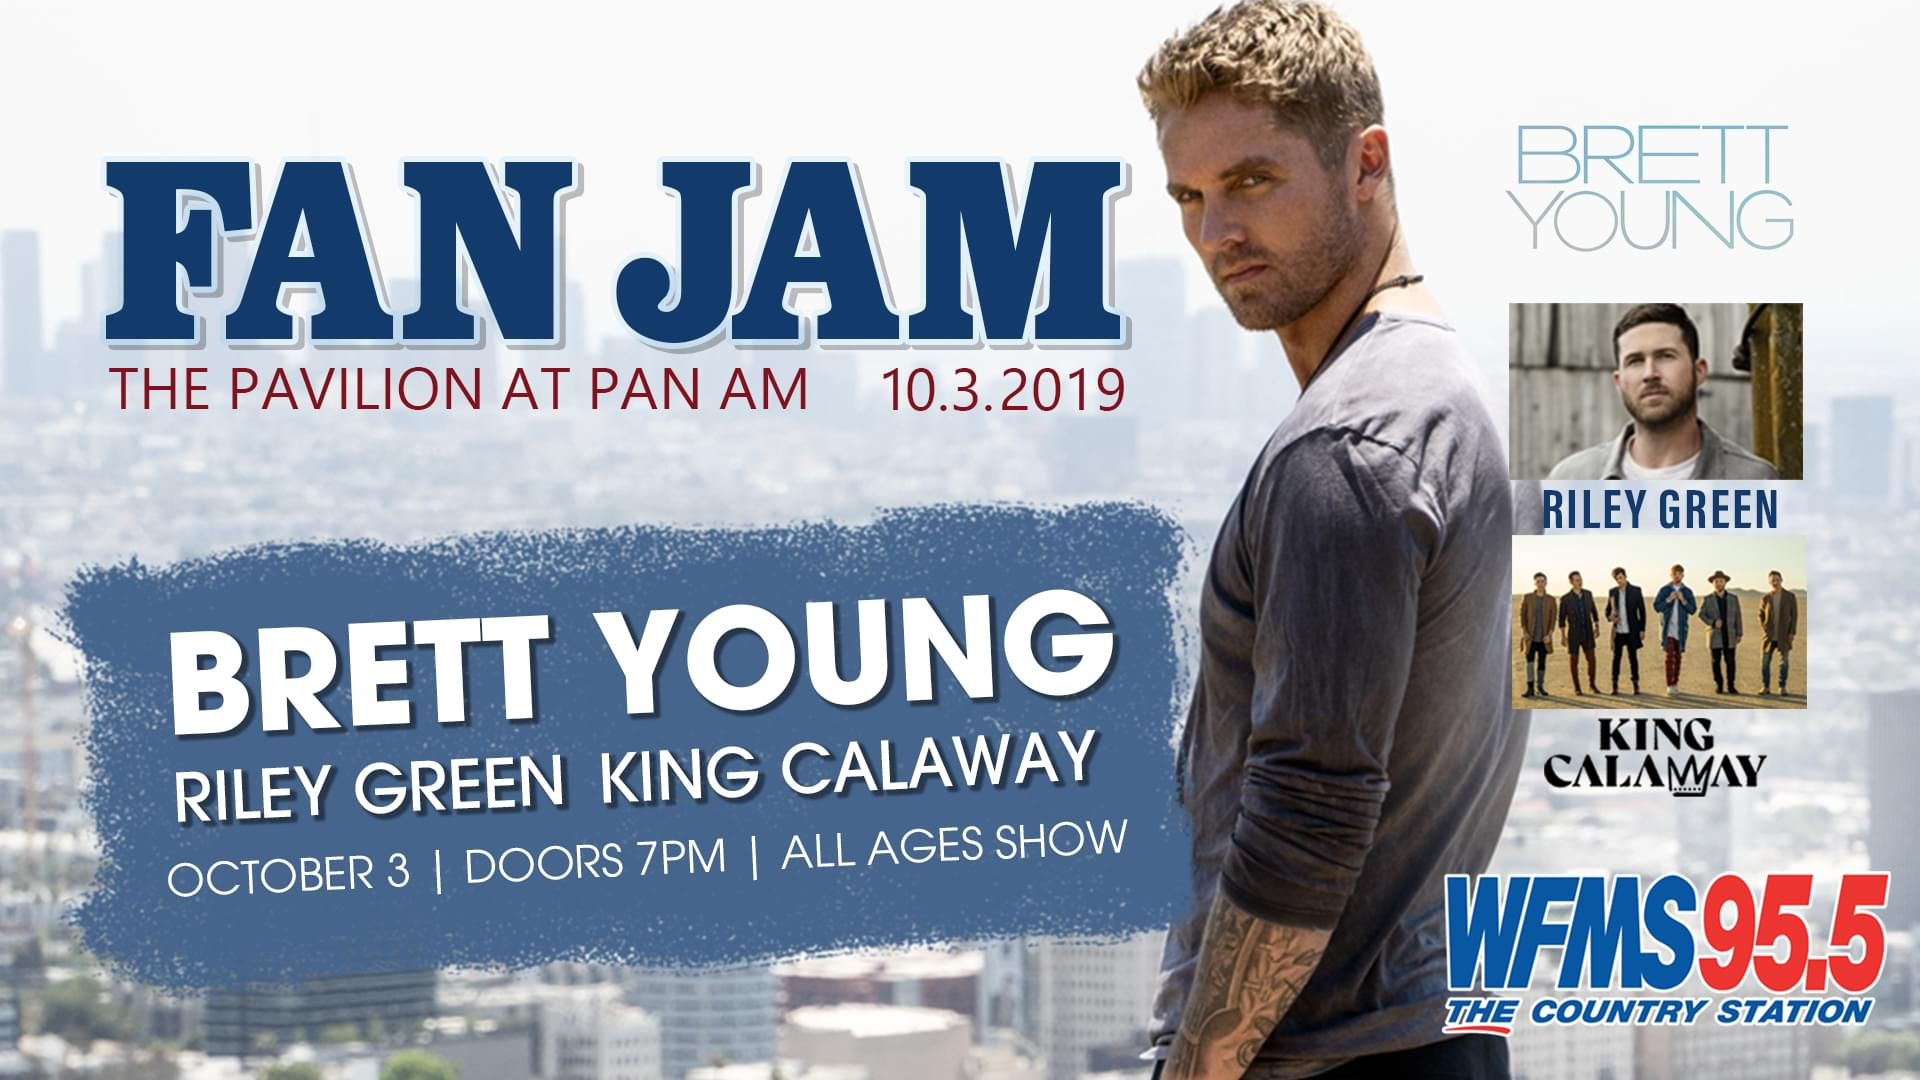 October 3 – Fan Jam featuring Brett Young with Riley Green